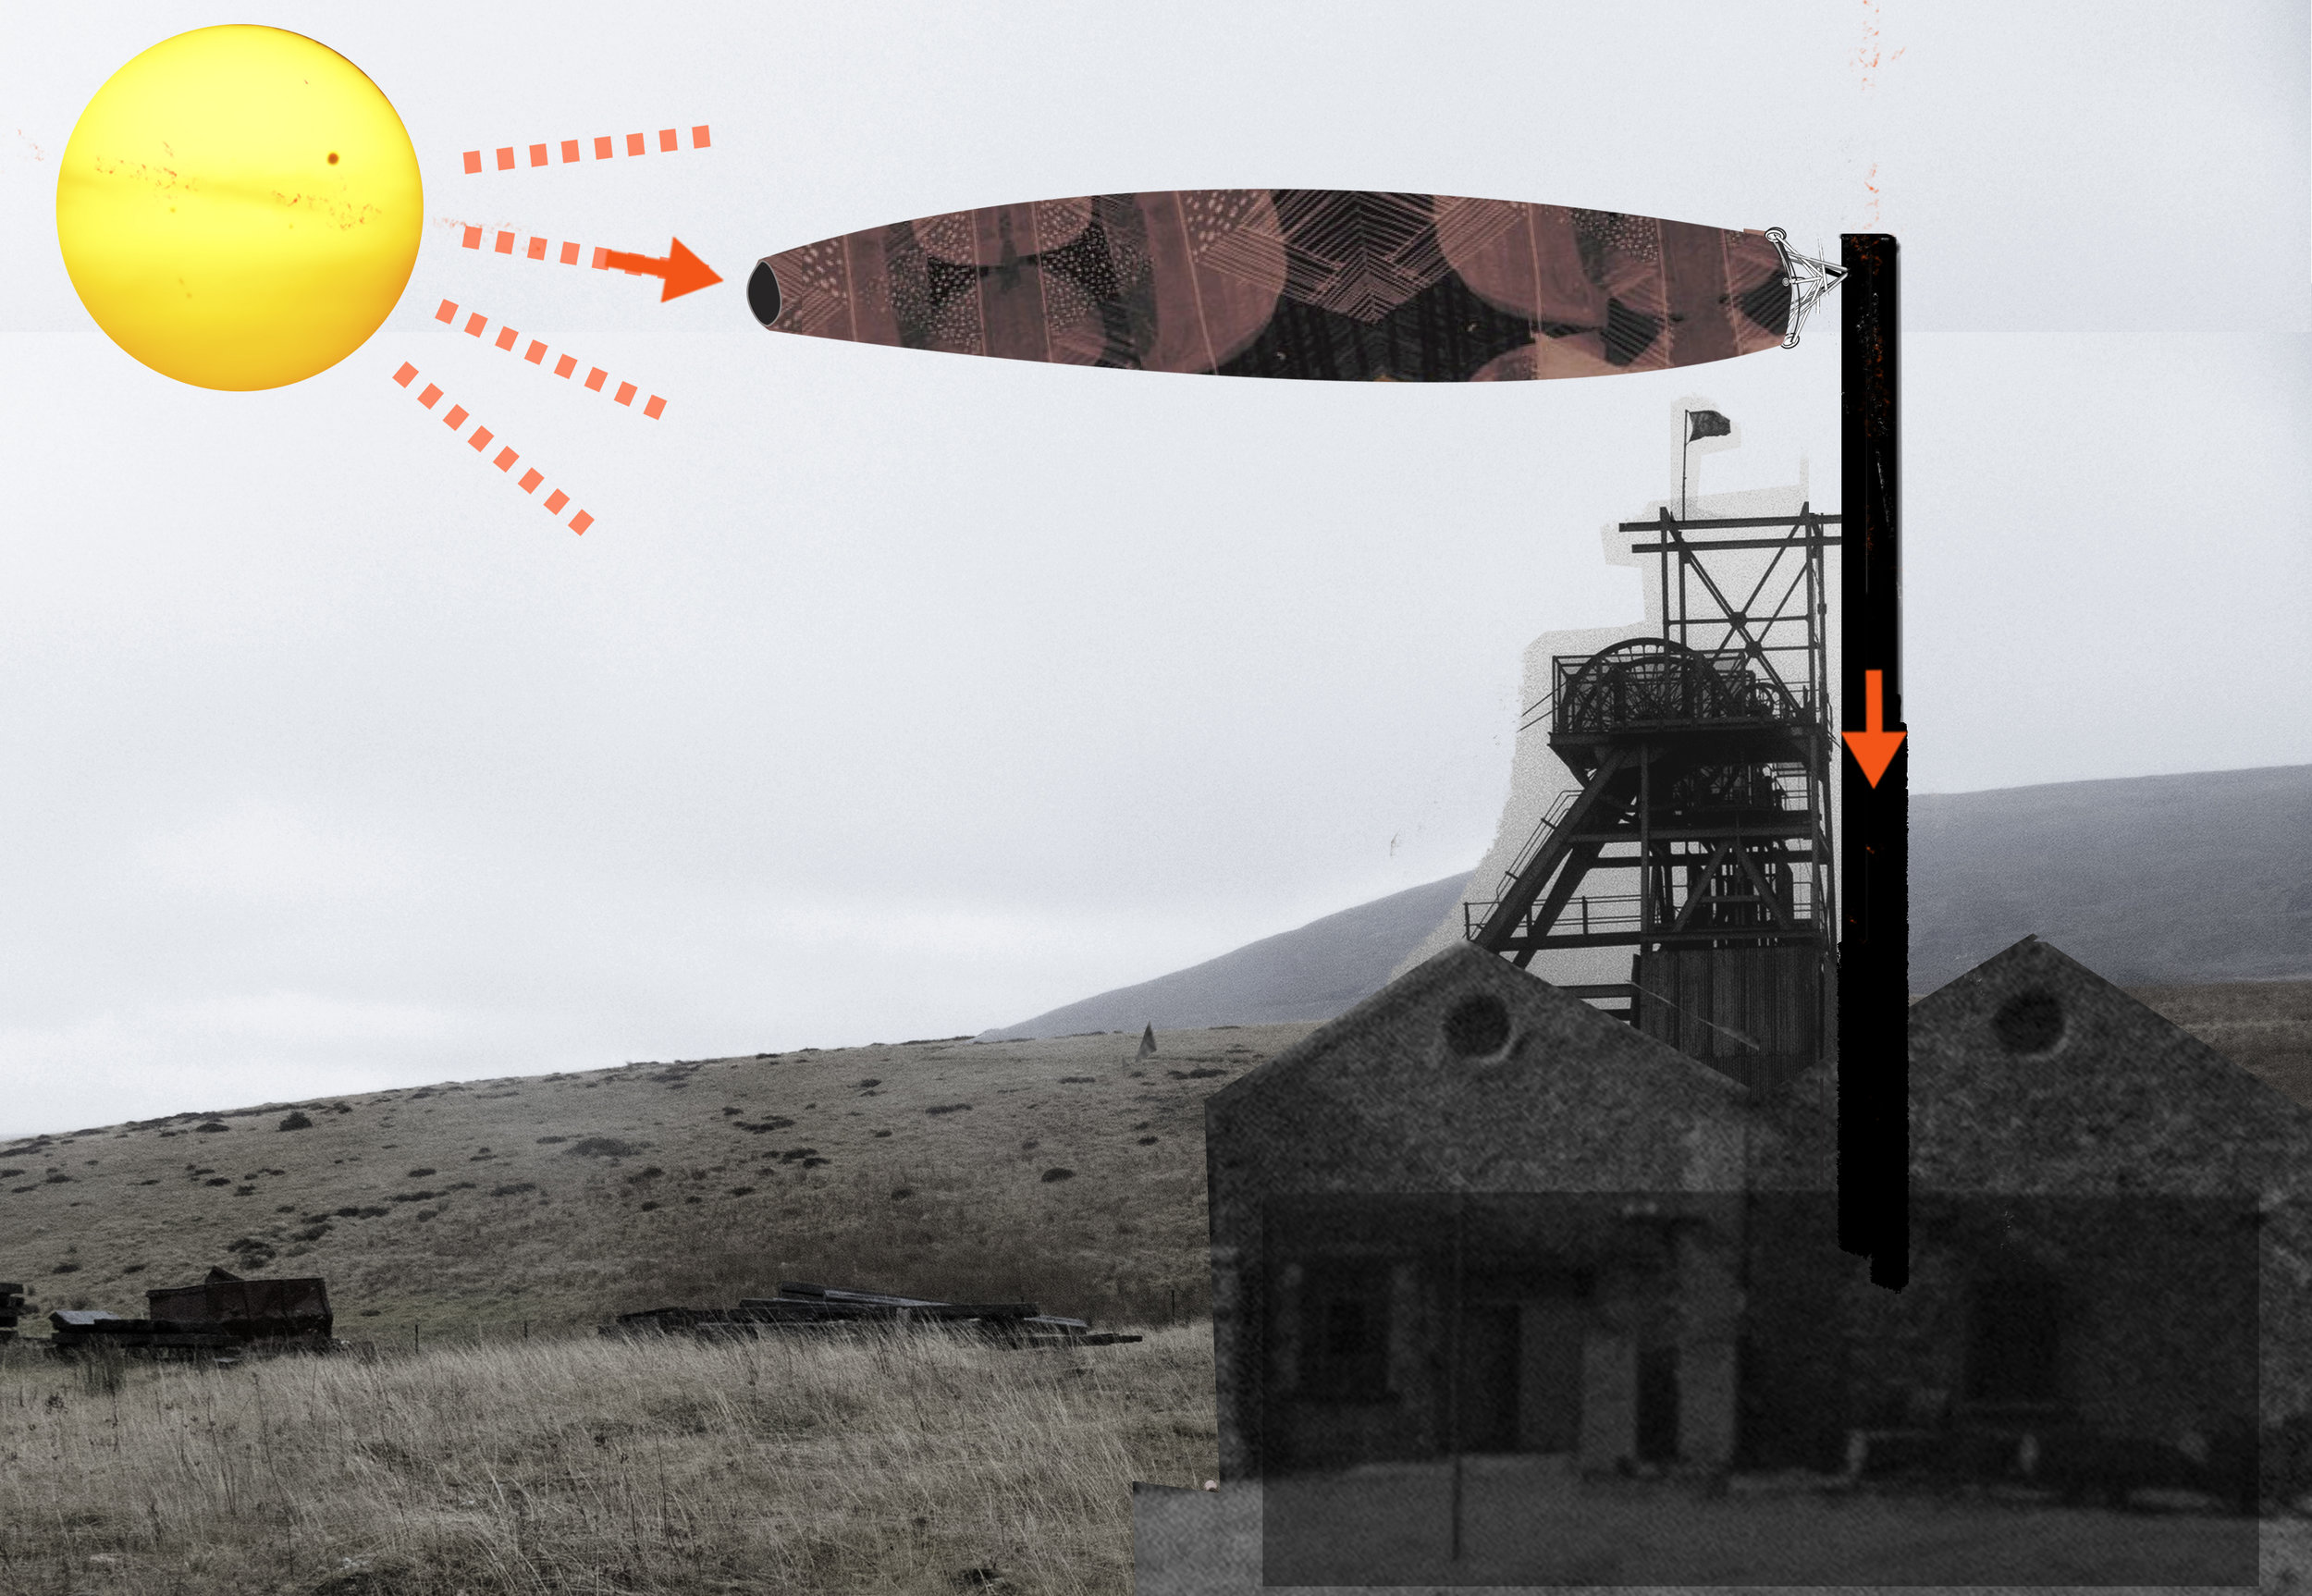 A frame from a gif showing the solar flag in use.